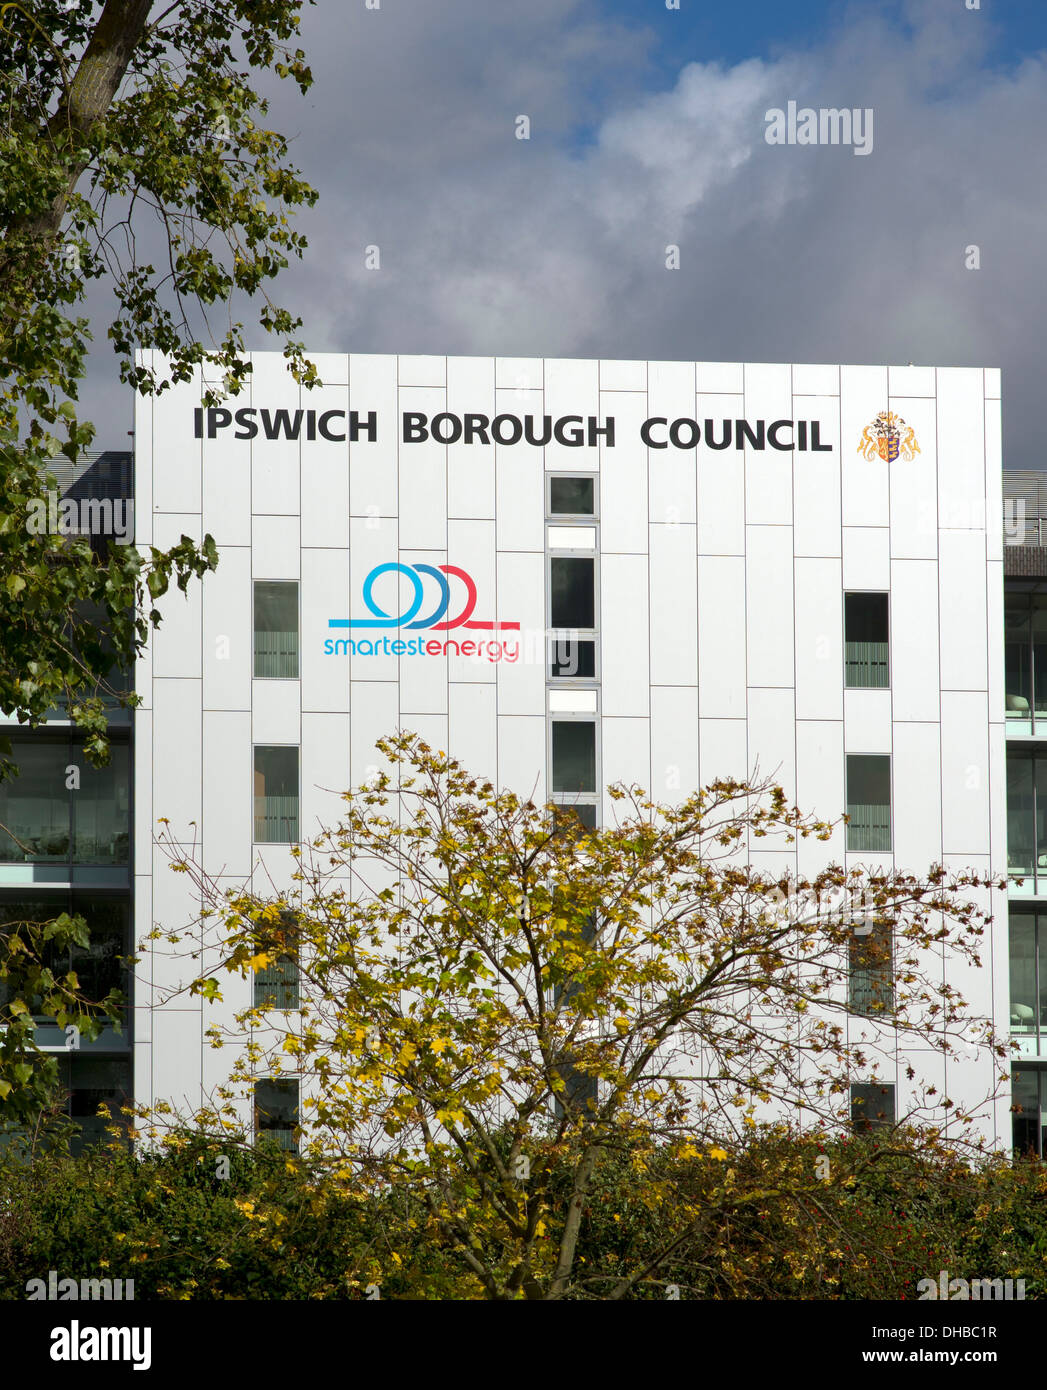 Ipswich Borough Council offices on the south side of Russel Road - Stock Image